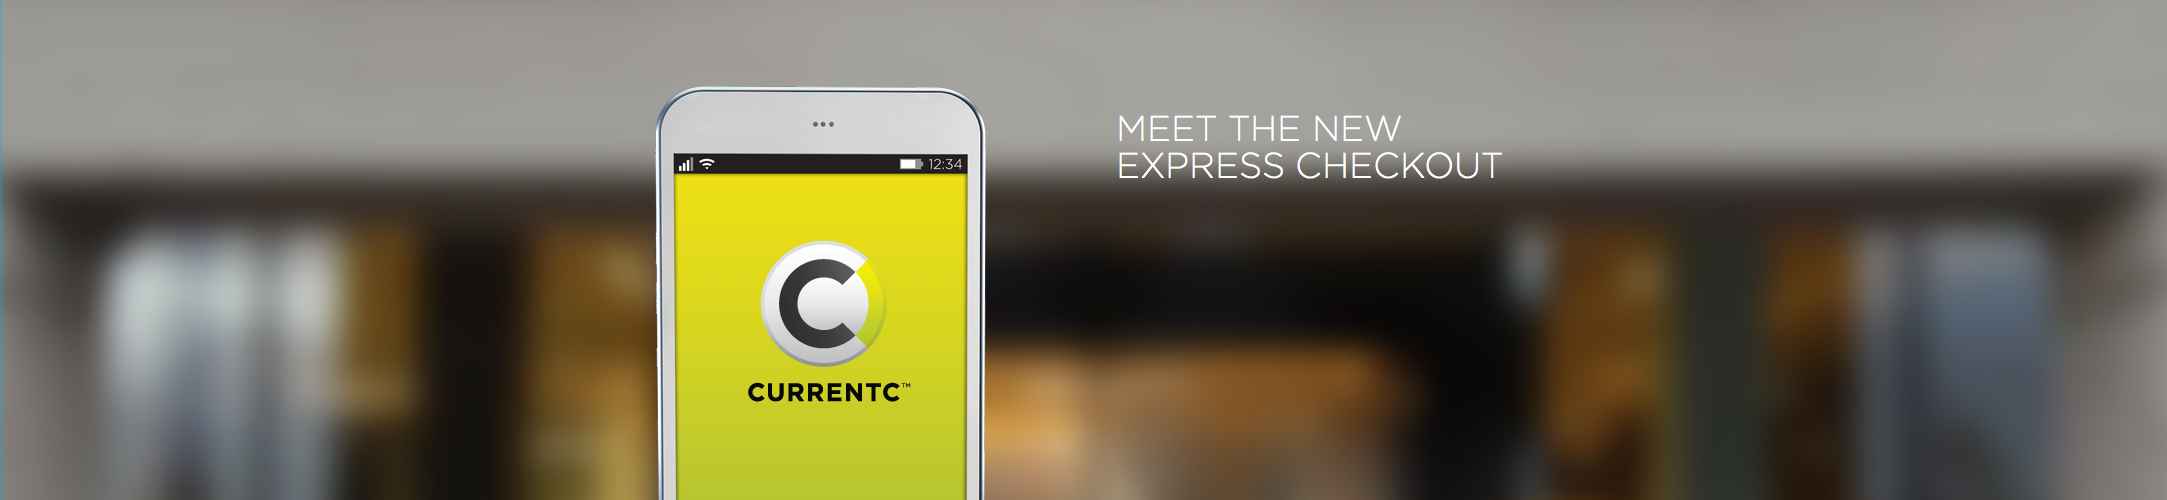 Apple Pay will have a great head start when CurrentC arrives